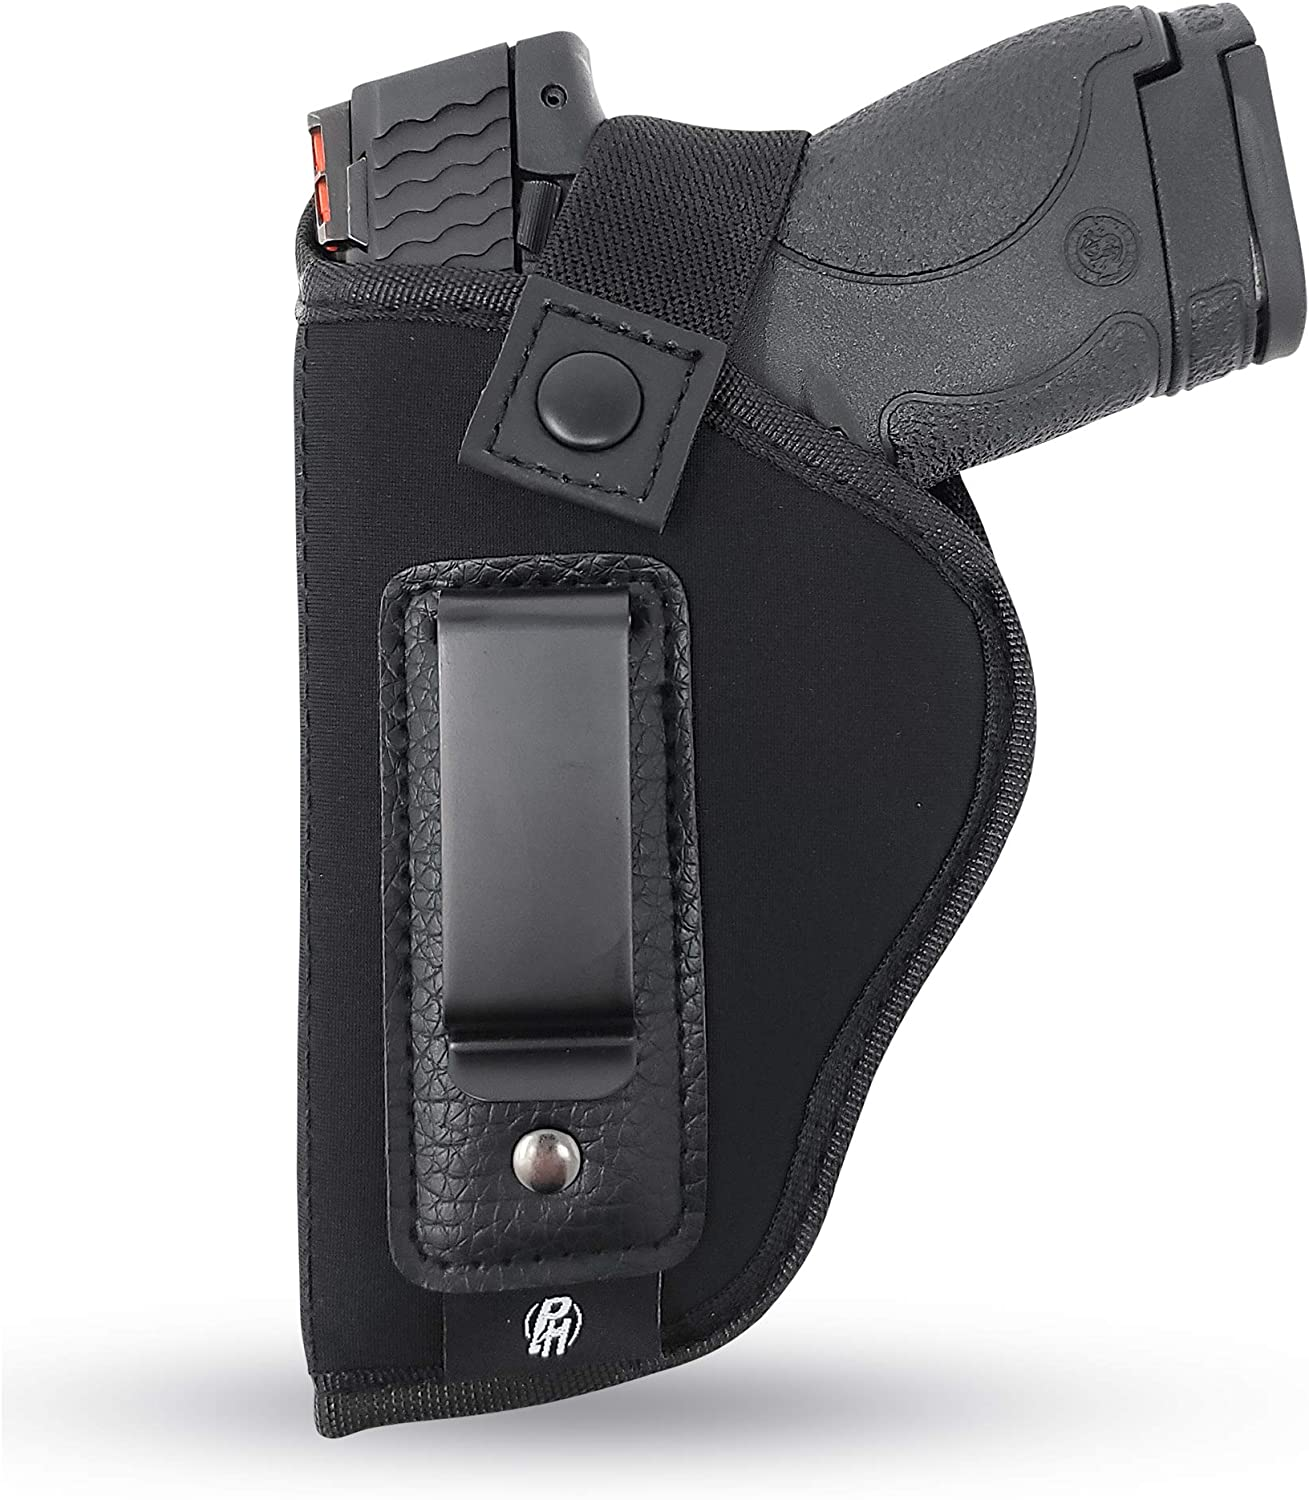 IWB Gun Holster by PH - Concealed Carry Soft Material | Soft Interior | Fits M&P Shield 9mm.40.45 Auto/Glock 19 26 27 29 30 33 42 43 / Rug LC9, LC380 | Taurus Slim, PT111 G2 | Springfield XDs Hellcat